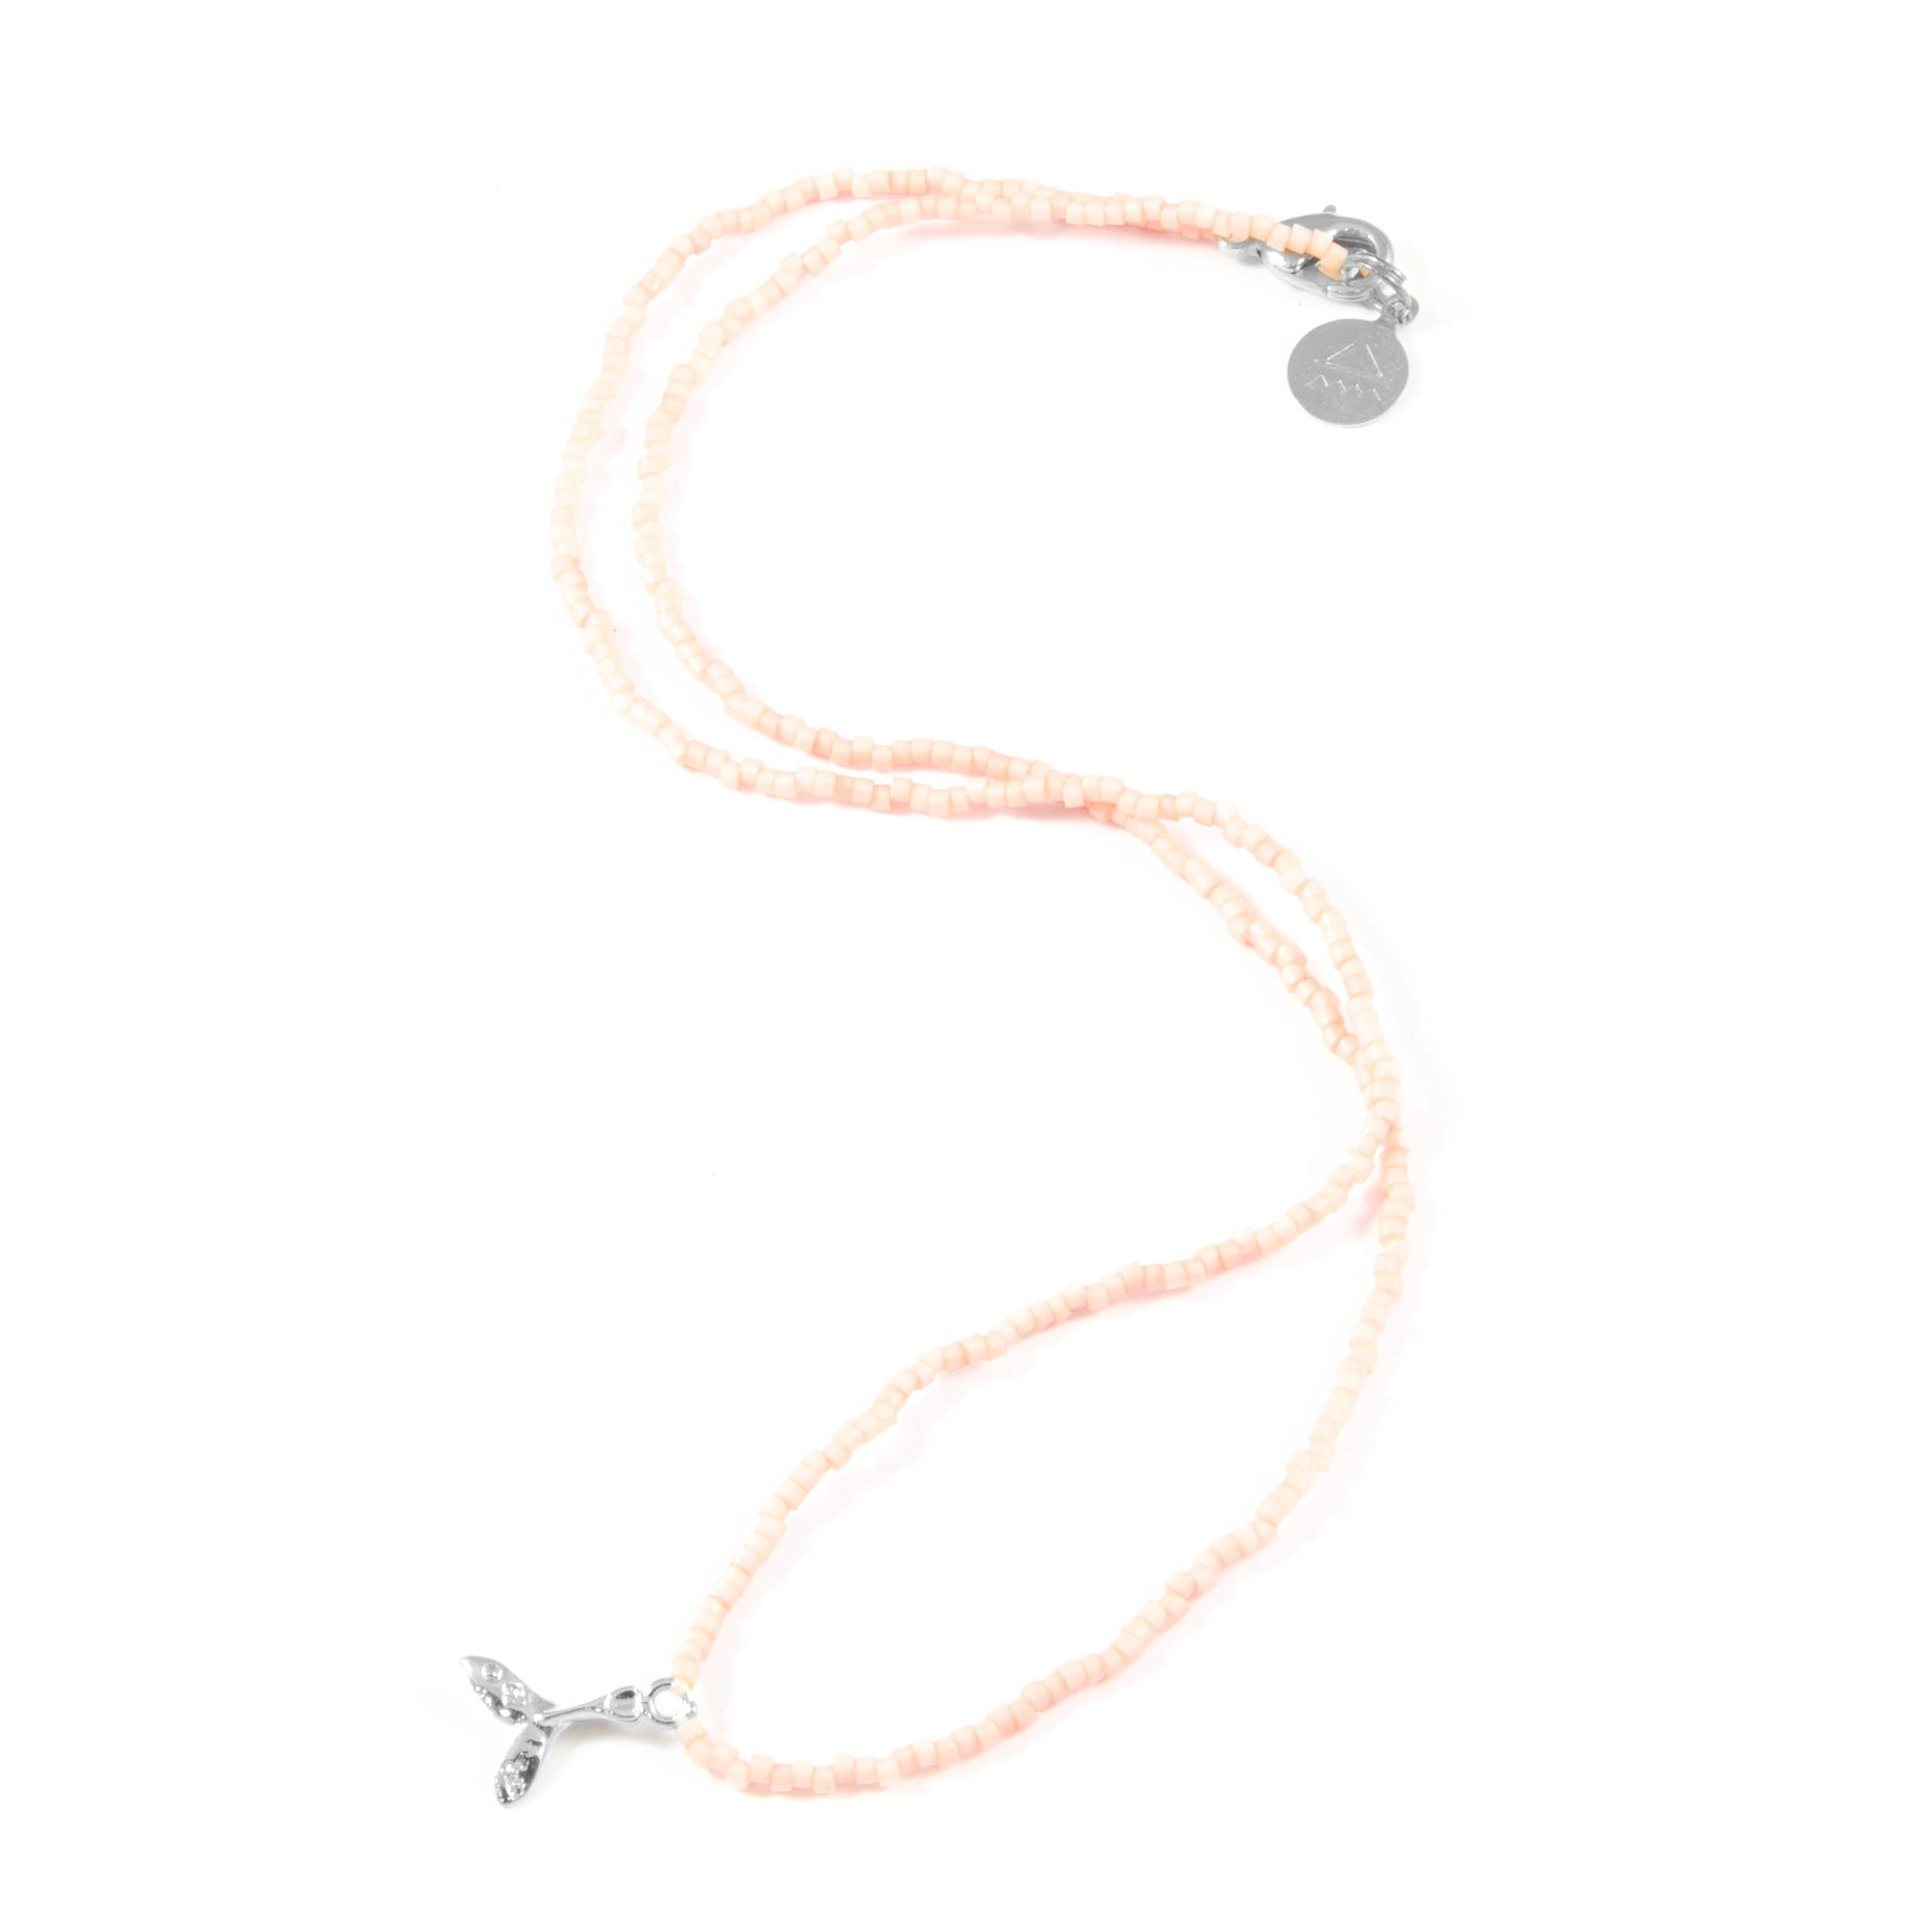 Coral Mermaid Tail Tiny Charm Necklace in Silver